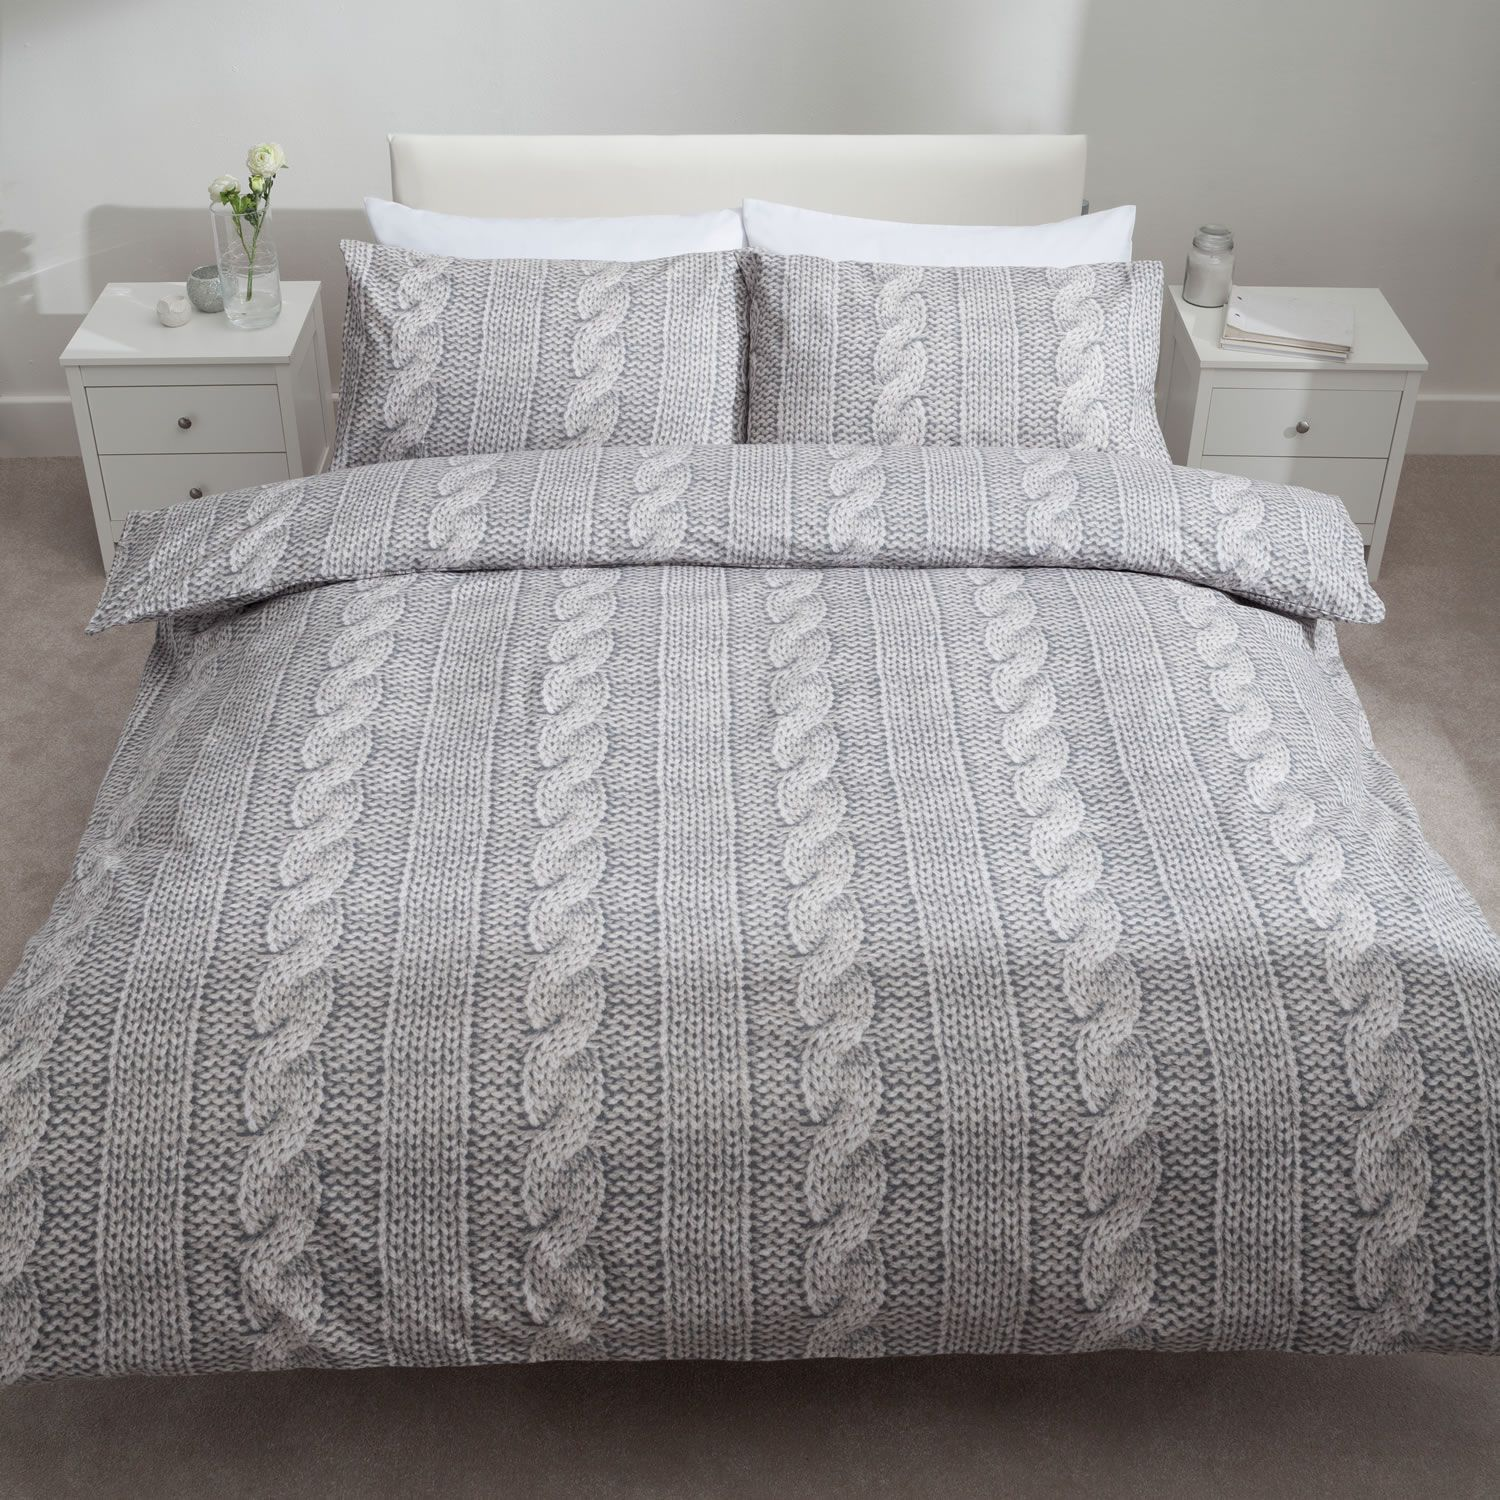 Lovely Catherine Lansfield Cable Knit Bedding Set. Http://www.worldstores.co